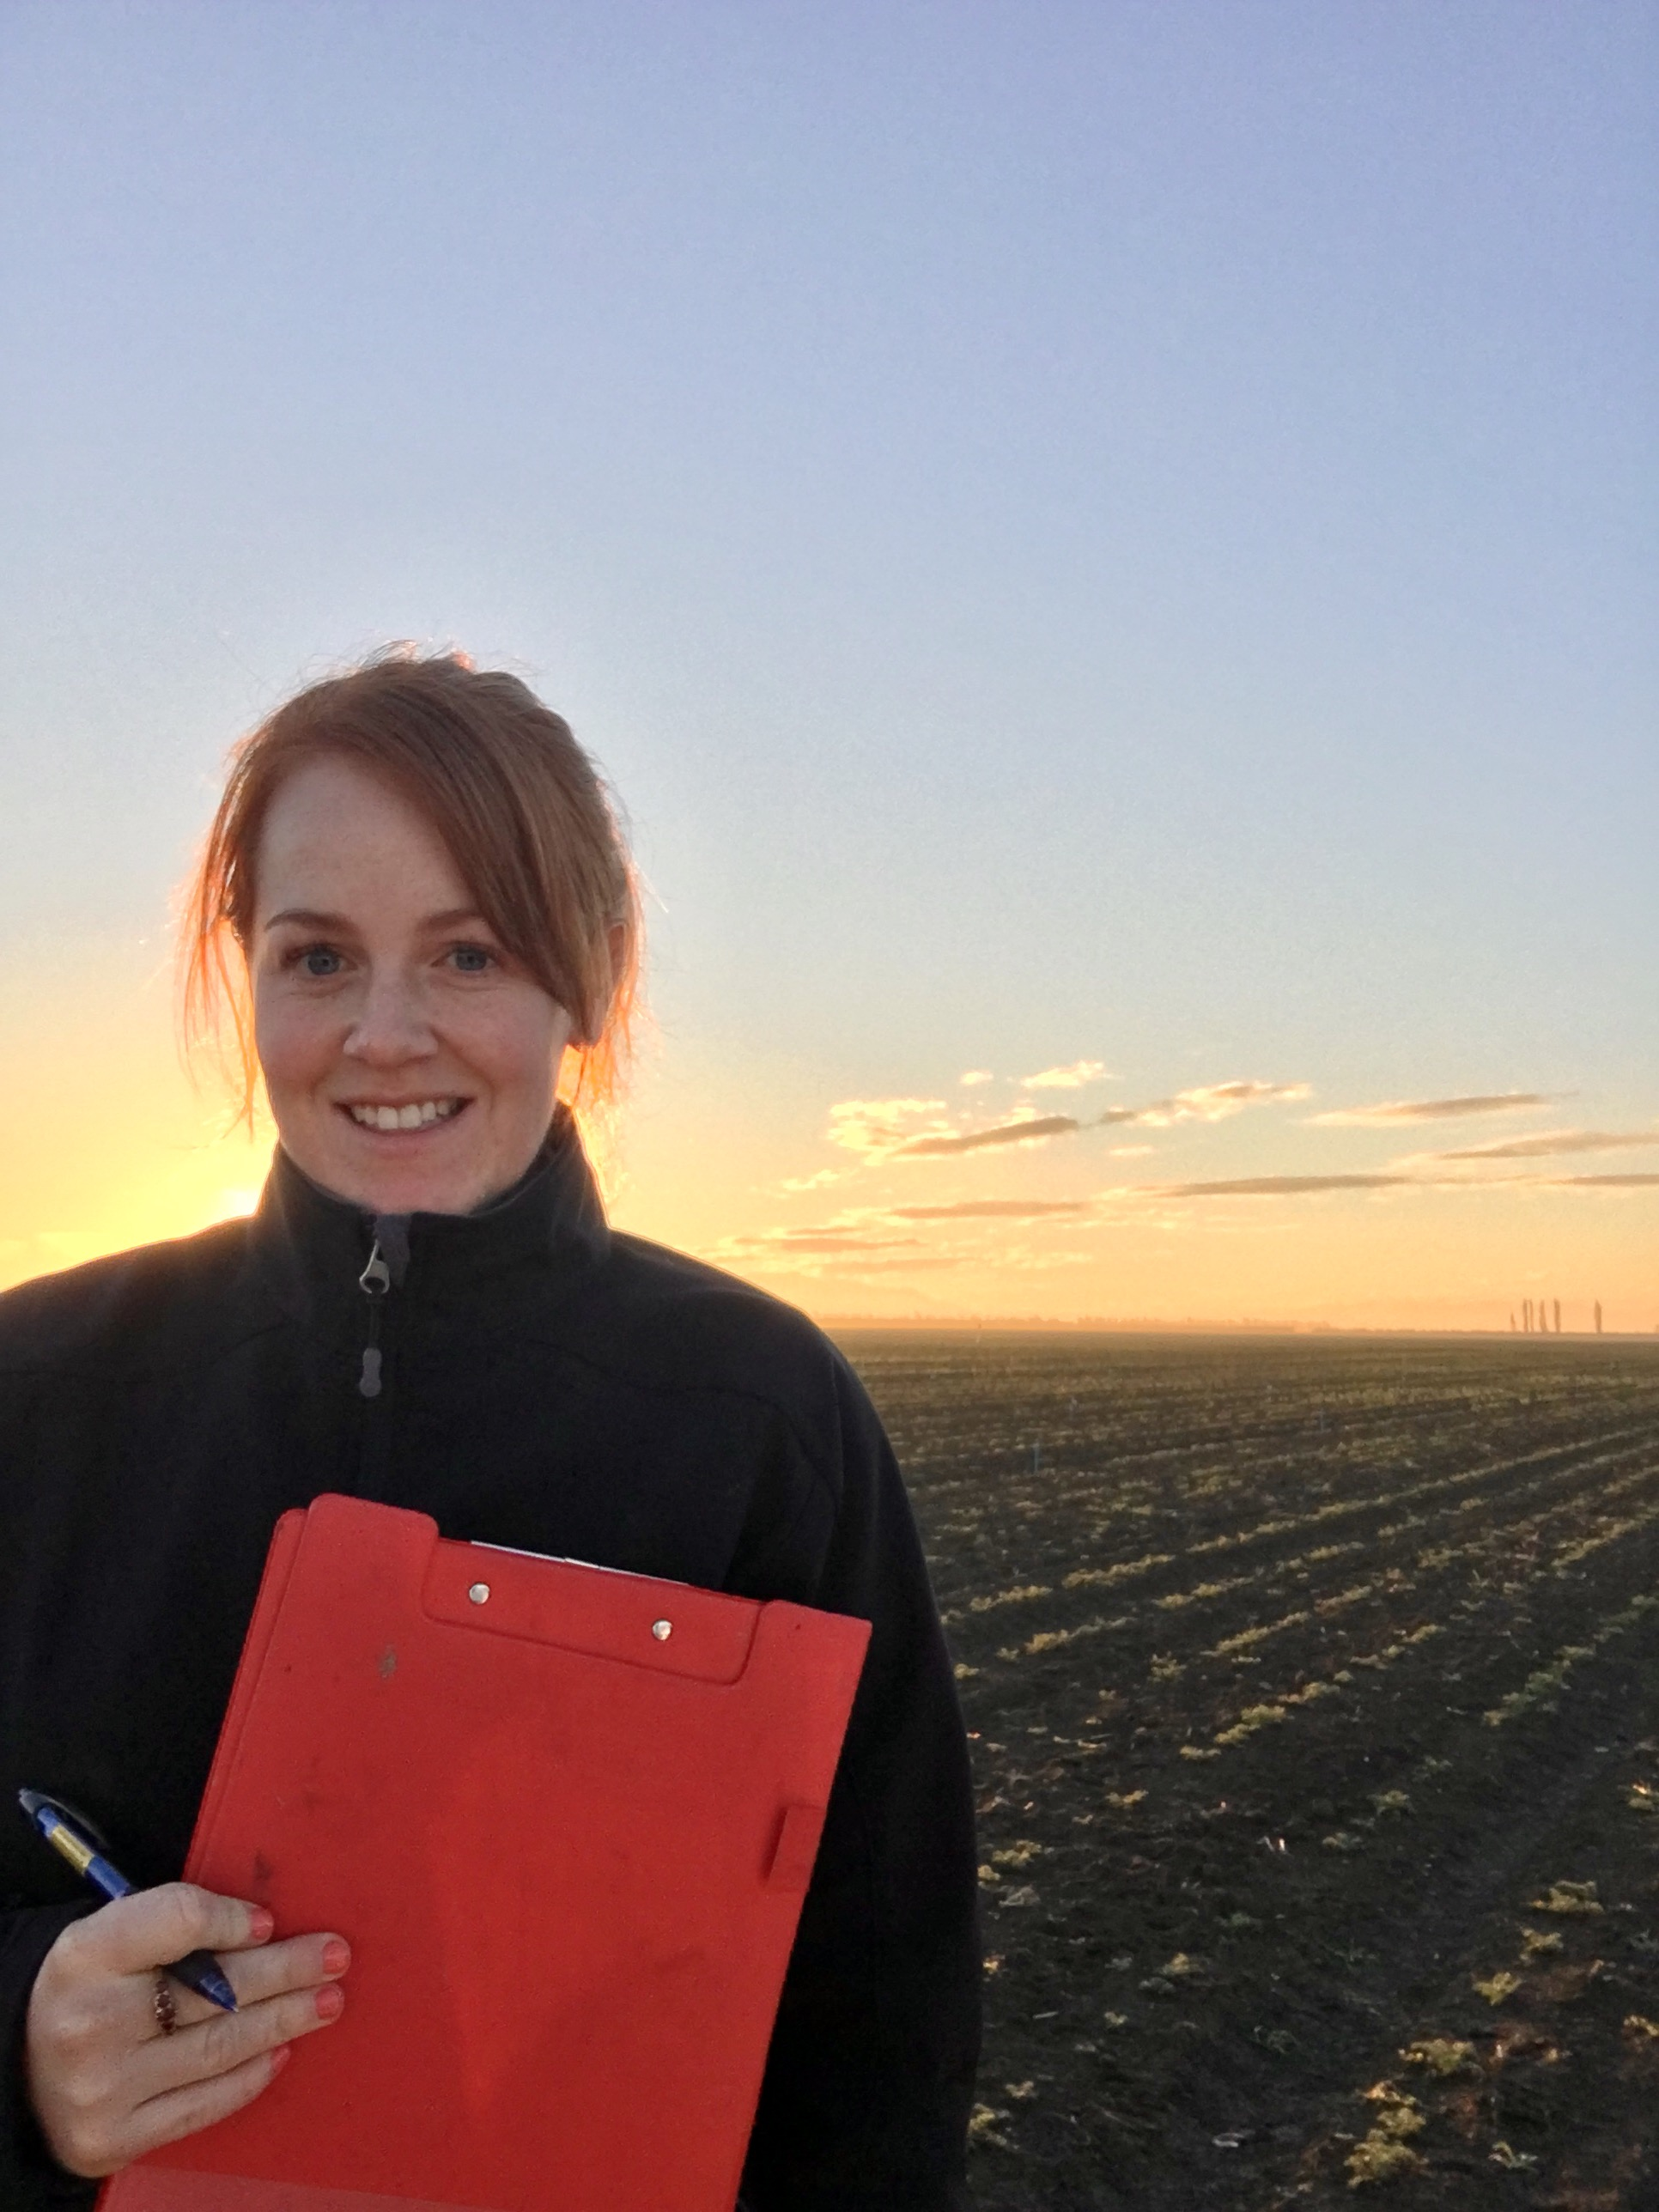 """I do it because I am passionate about science, farm systems, problem solving, and increasing productivity and profitability for farmers. I love the process and challenge of what I do and I am a firm believer that you get out what you put in."